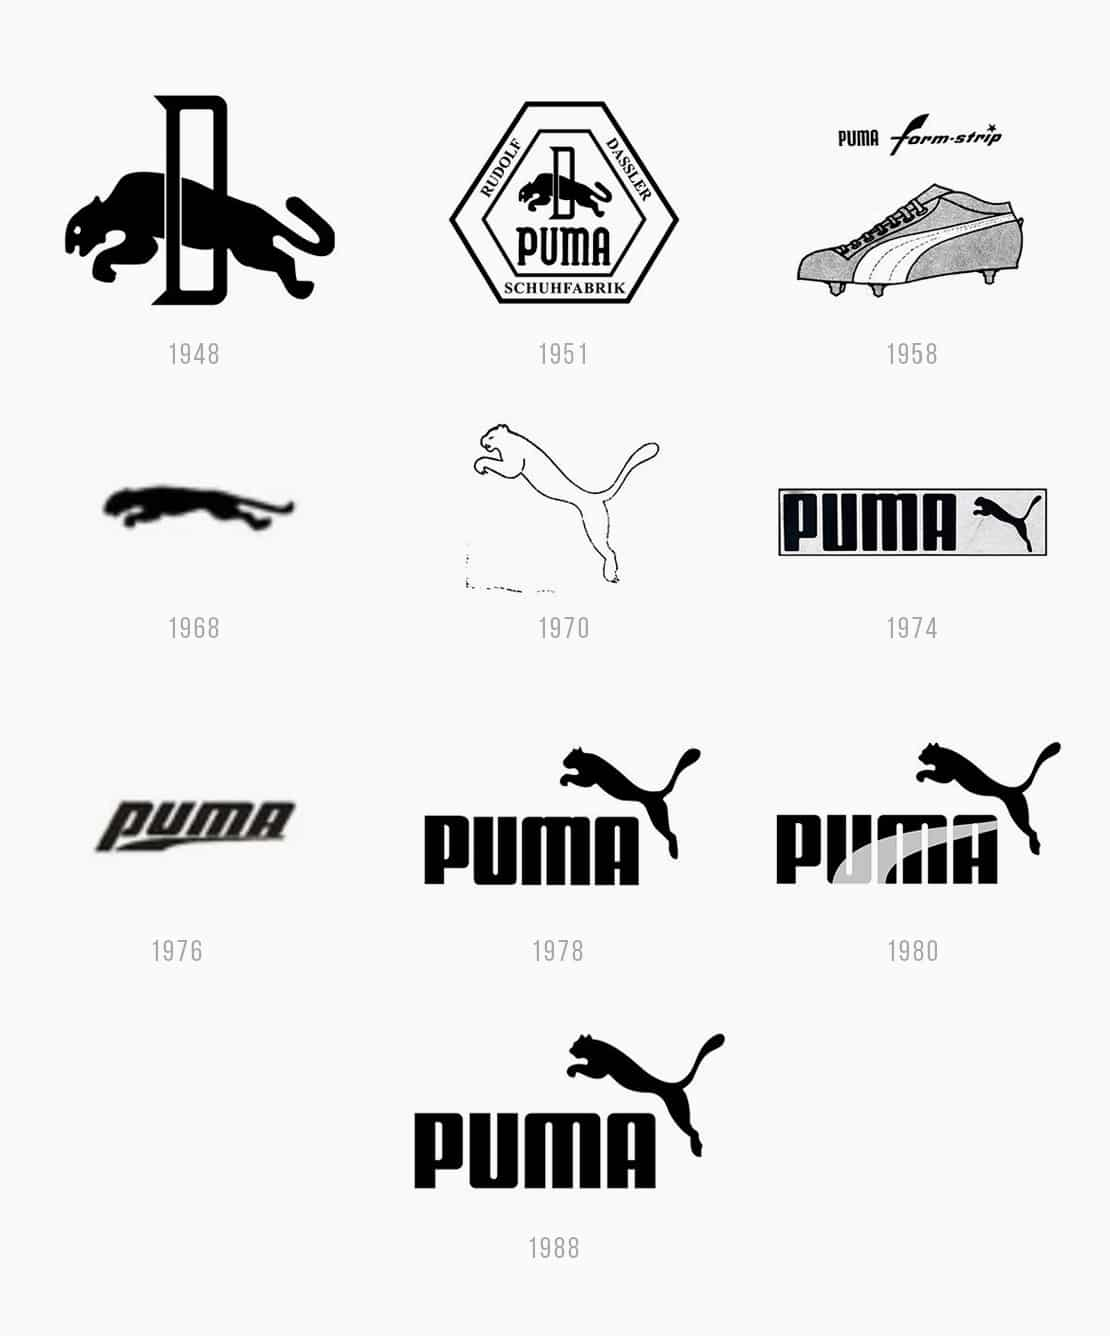 Puma logo evolution